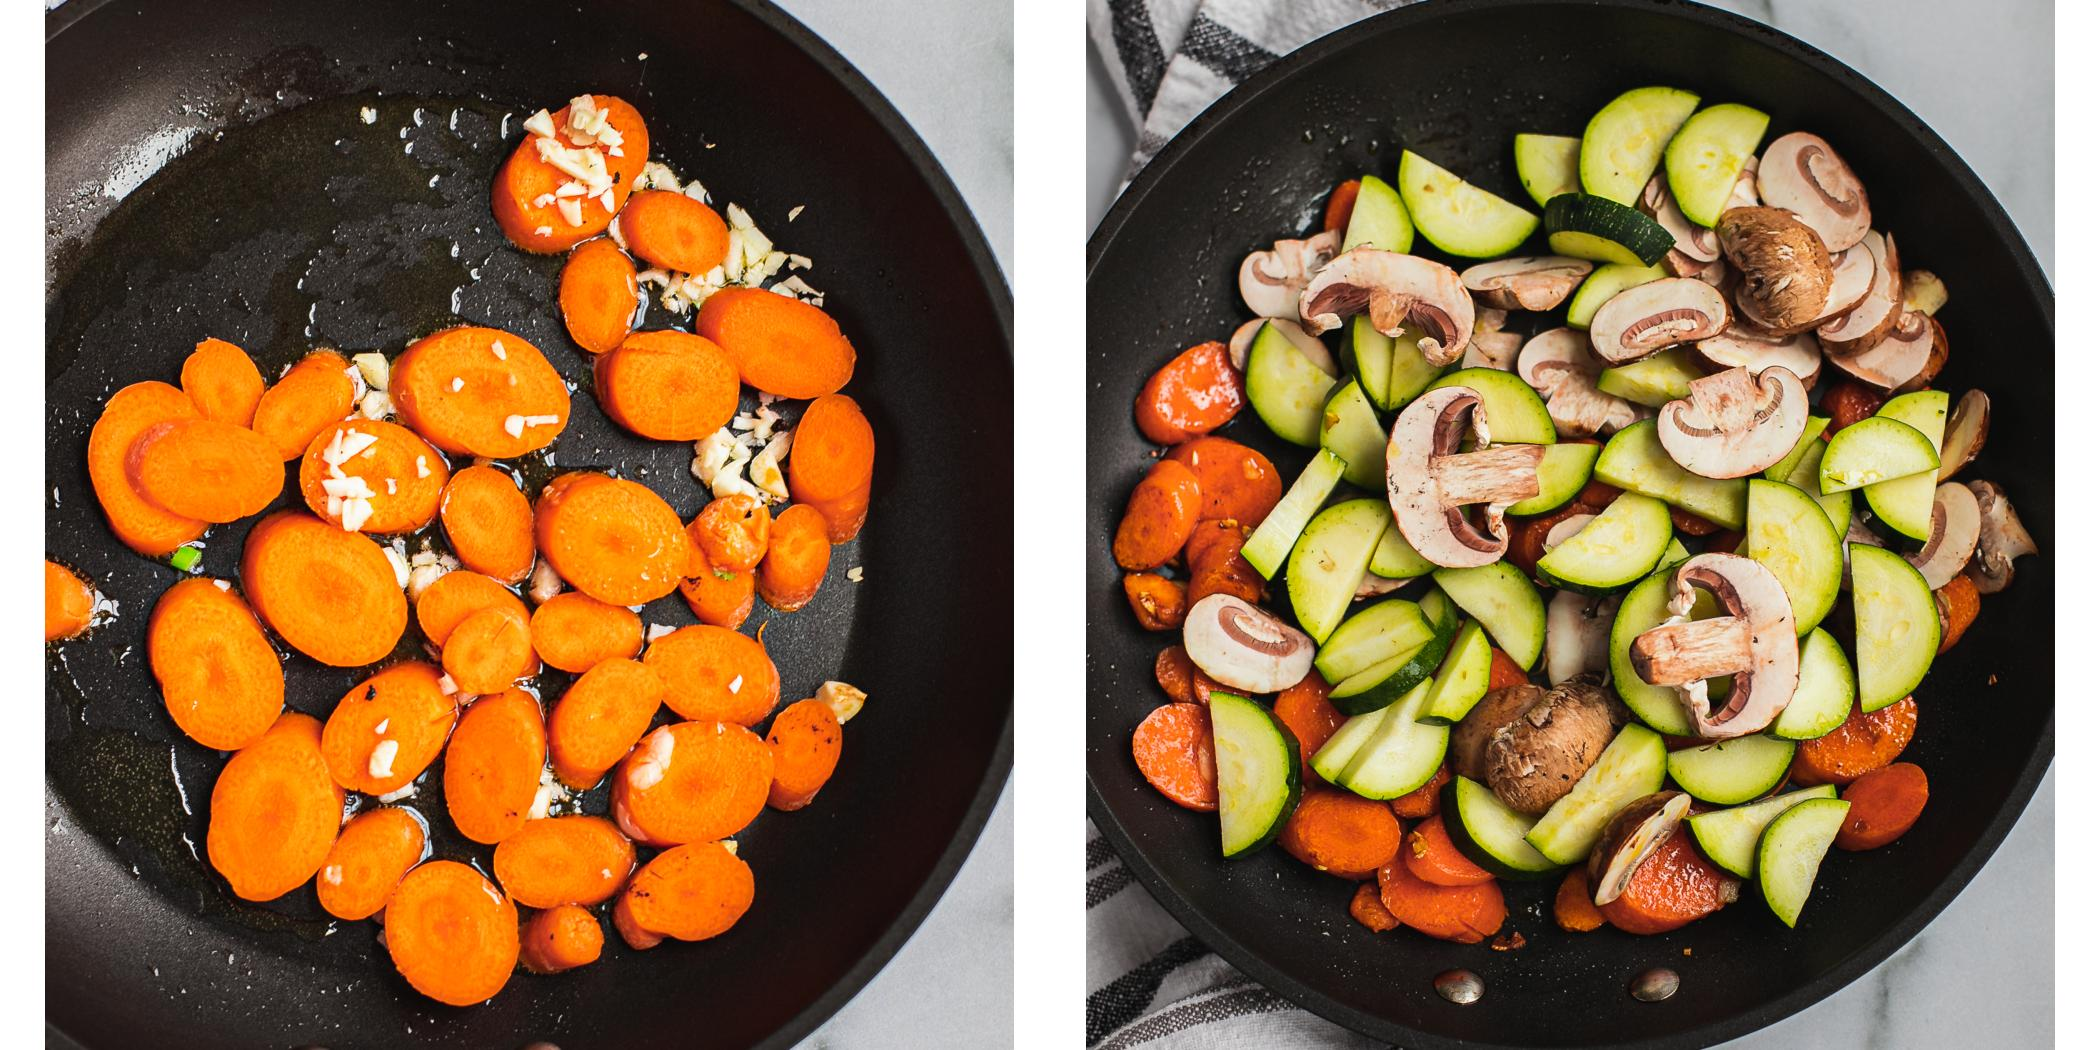 There are two pictures. On the left there is a pan with carrots and garlic being sautéed.. On the right more vegetables has been added